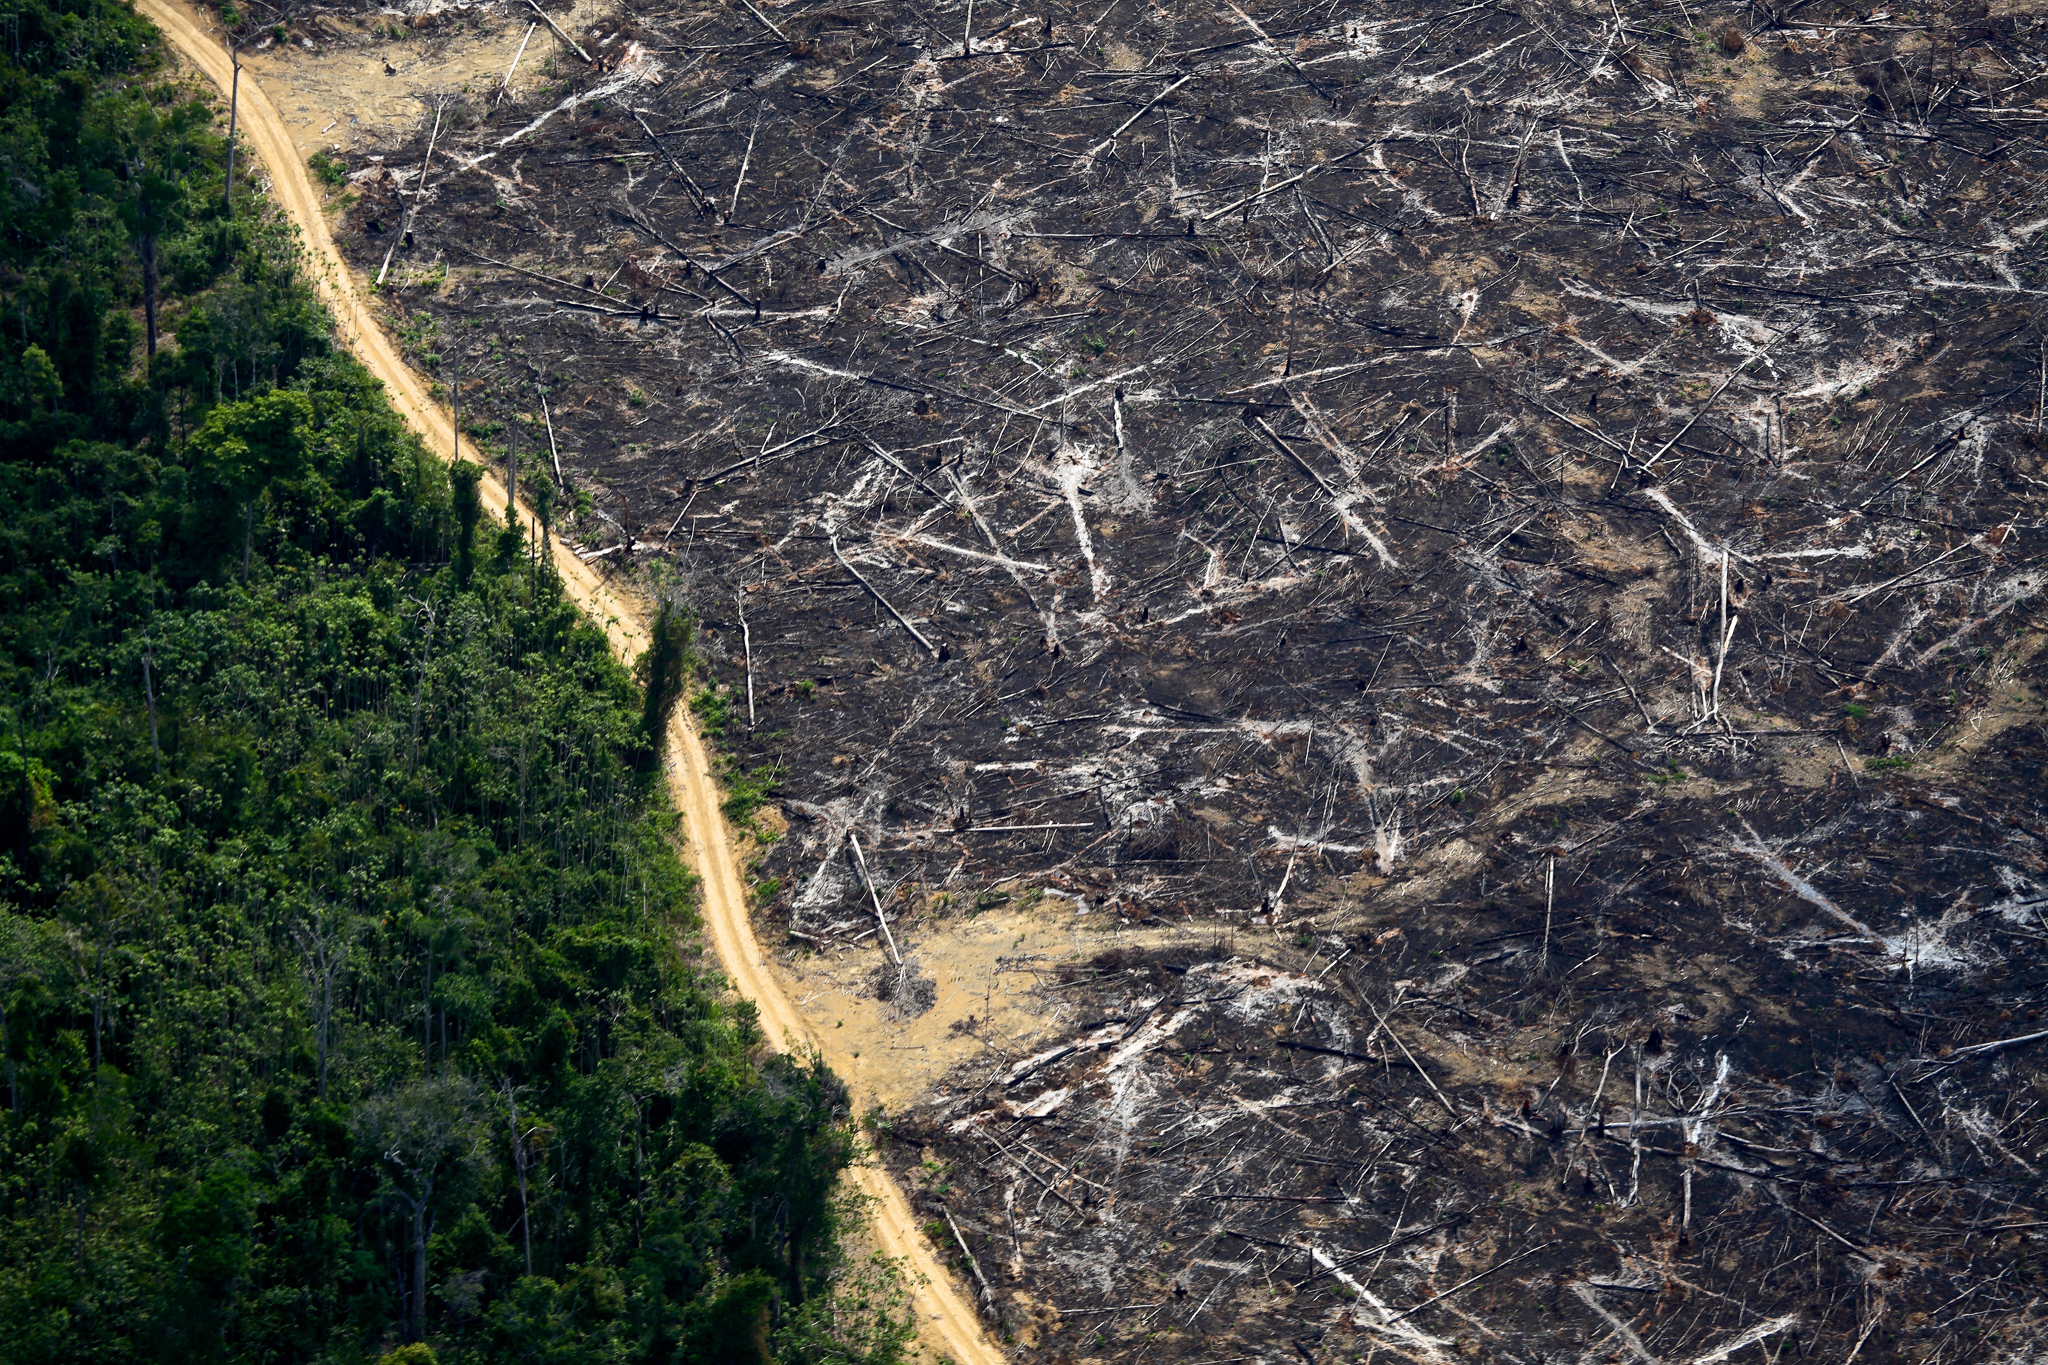 The black remnants of a burned forest contrast with the green of living trees in northern Mato Grosso. Photograph by Rodrigo Baleia